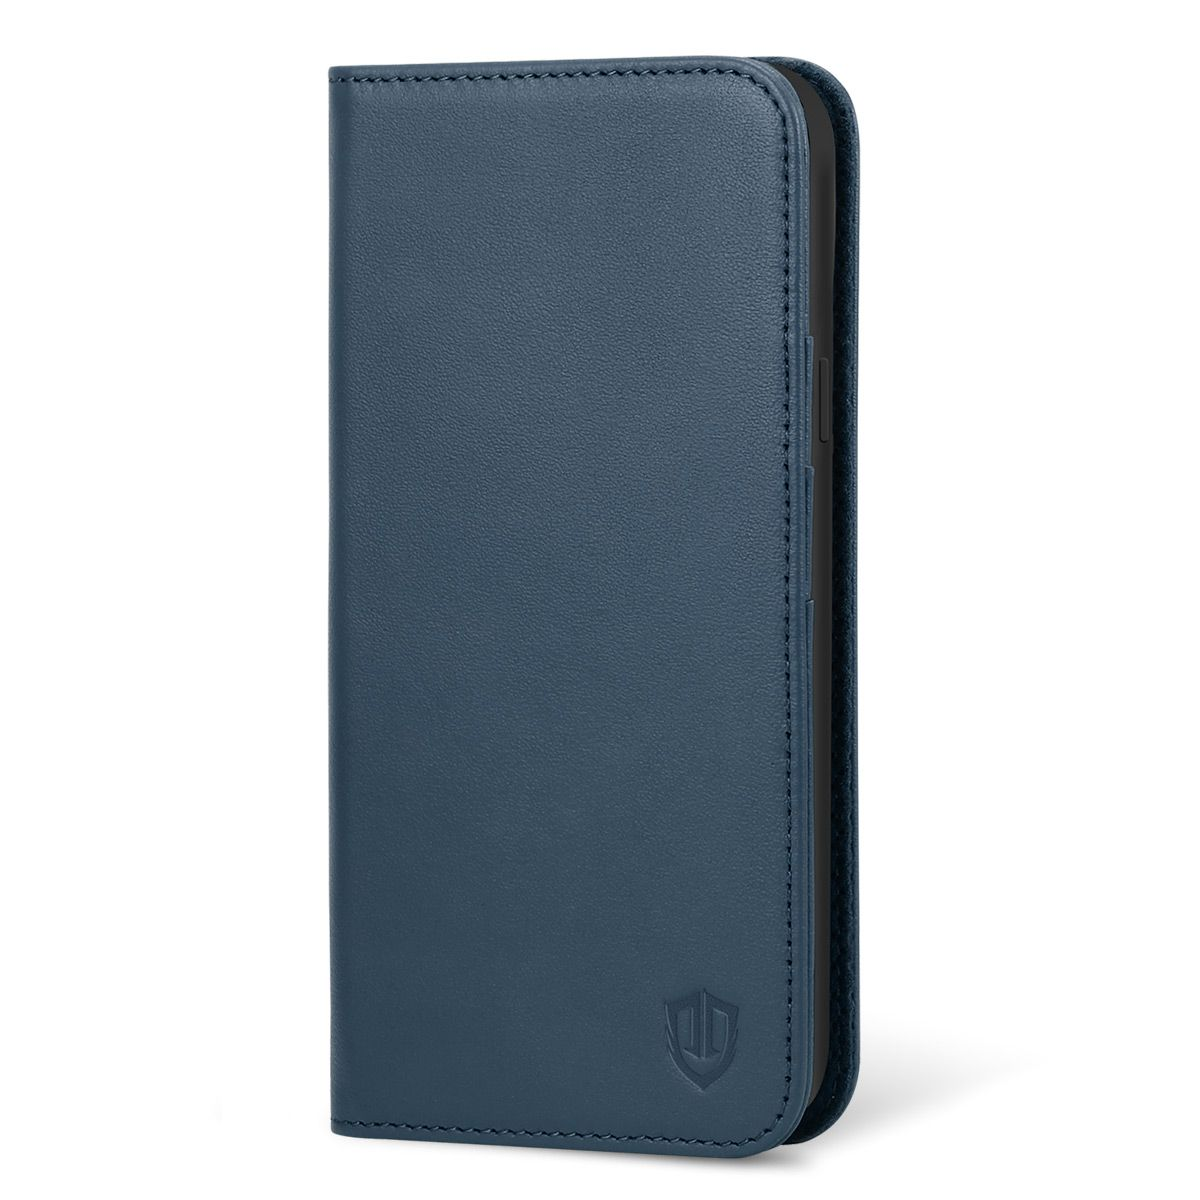 factory authentic 059ad db839 SHIELDON Samsung Galaxy S9 Genuine Leather Wallet Case with Kickstand